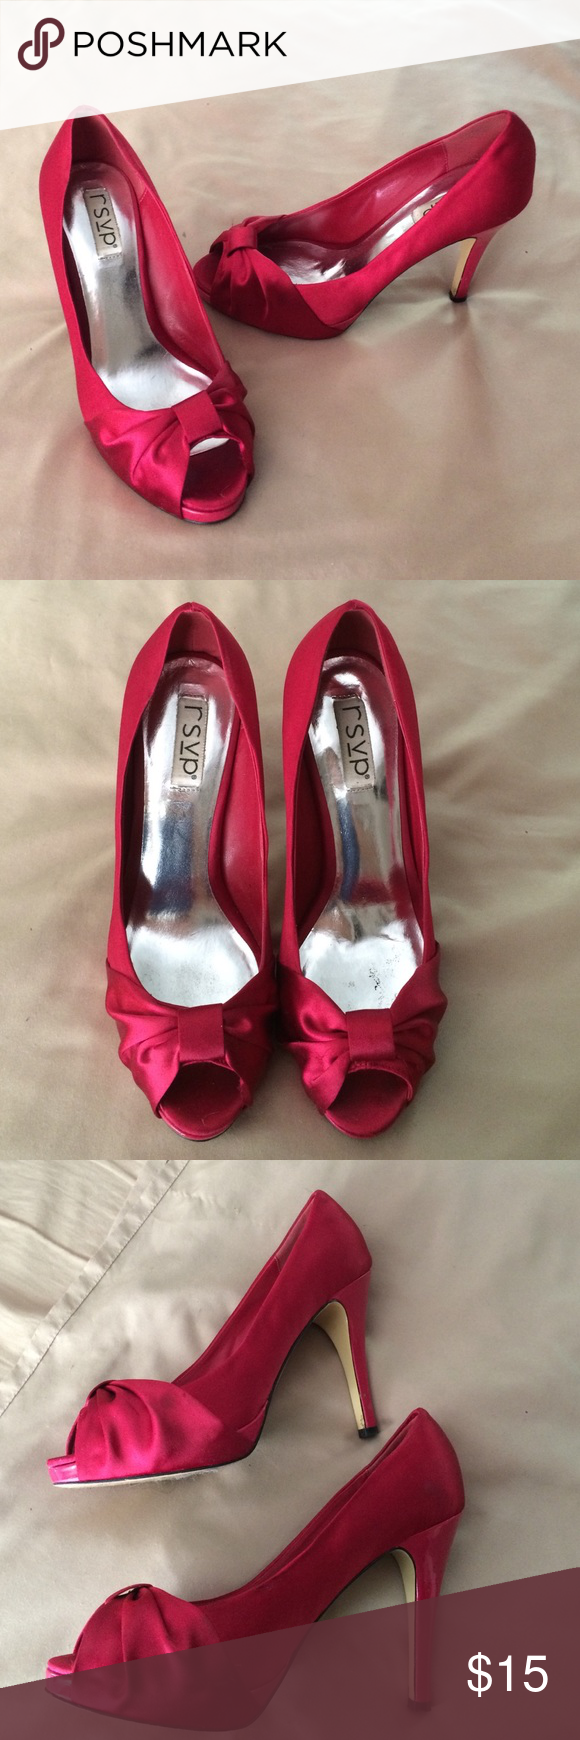 Classic red heel this classic red heel is a must in every wardrobe